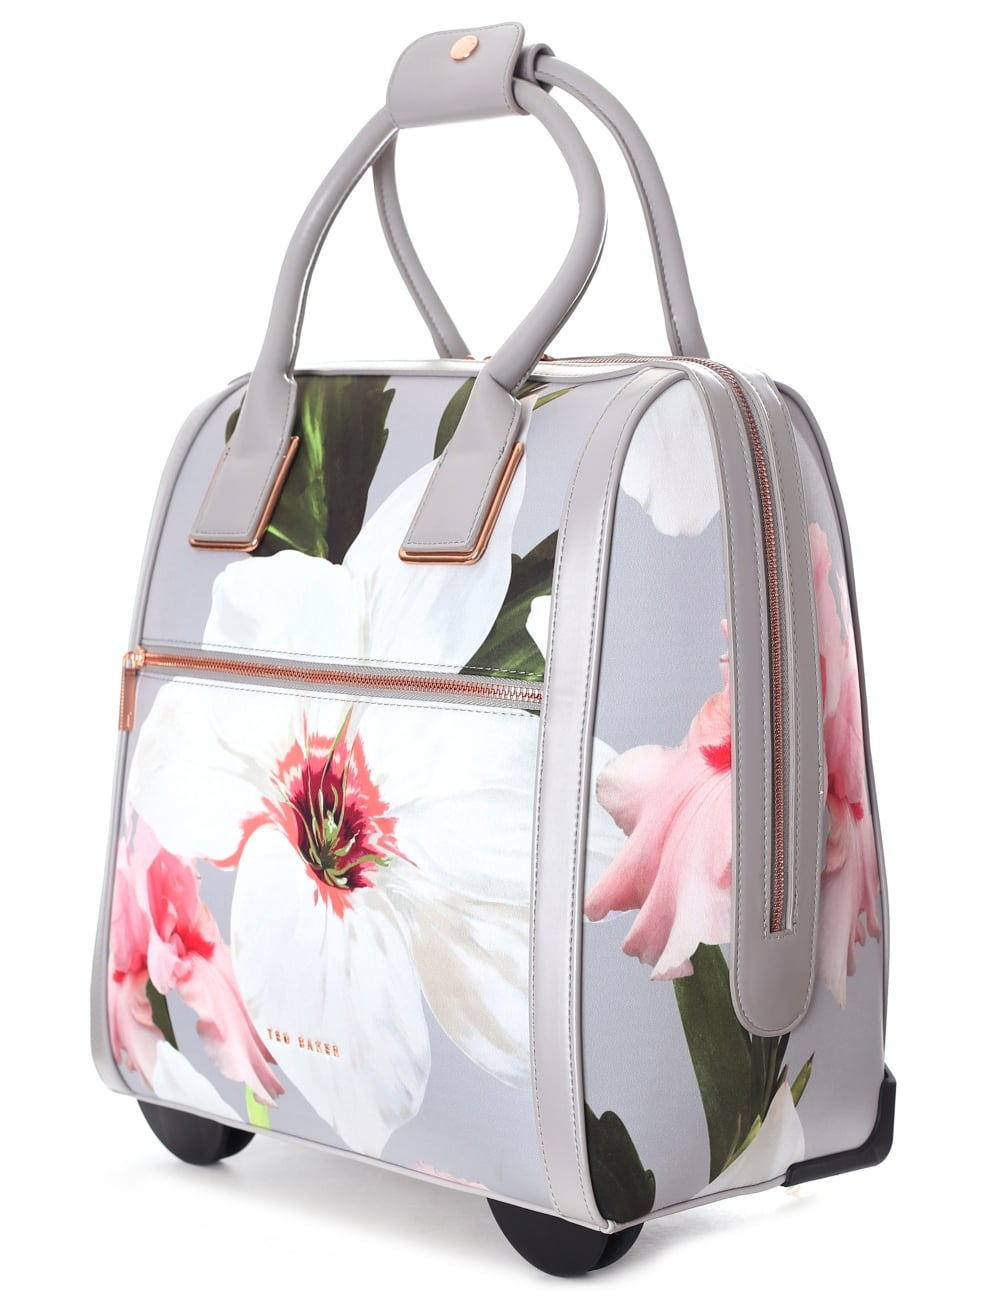 ccd74bf343319 Ted baker ordina womens chatsworth bloom travel bag jpg 1000x1300 Ted baker  travel bag